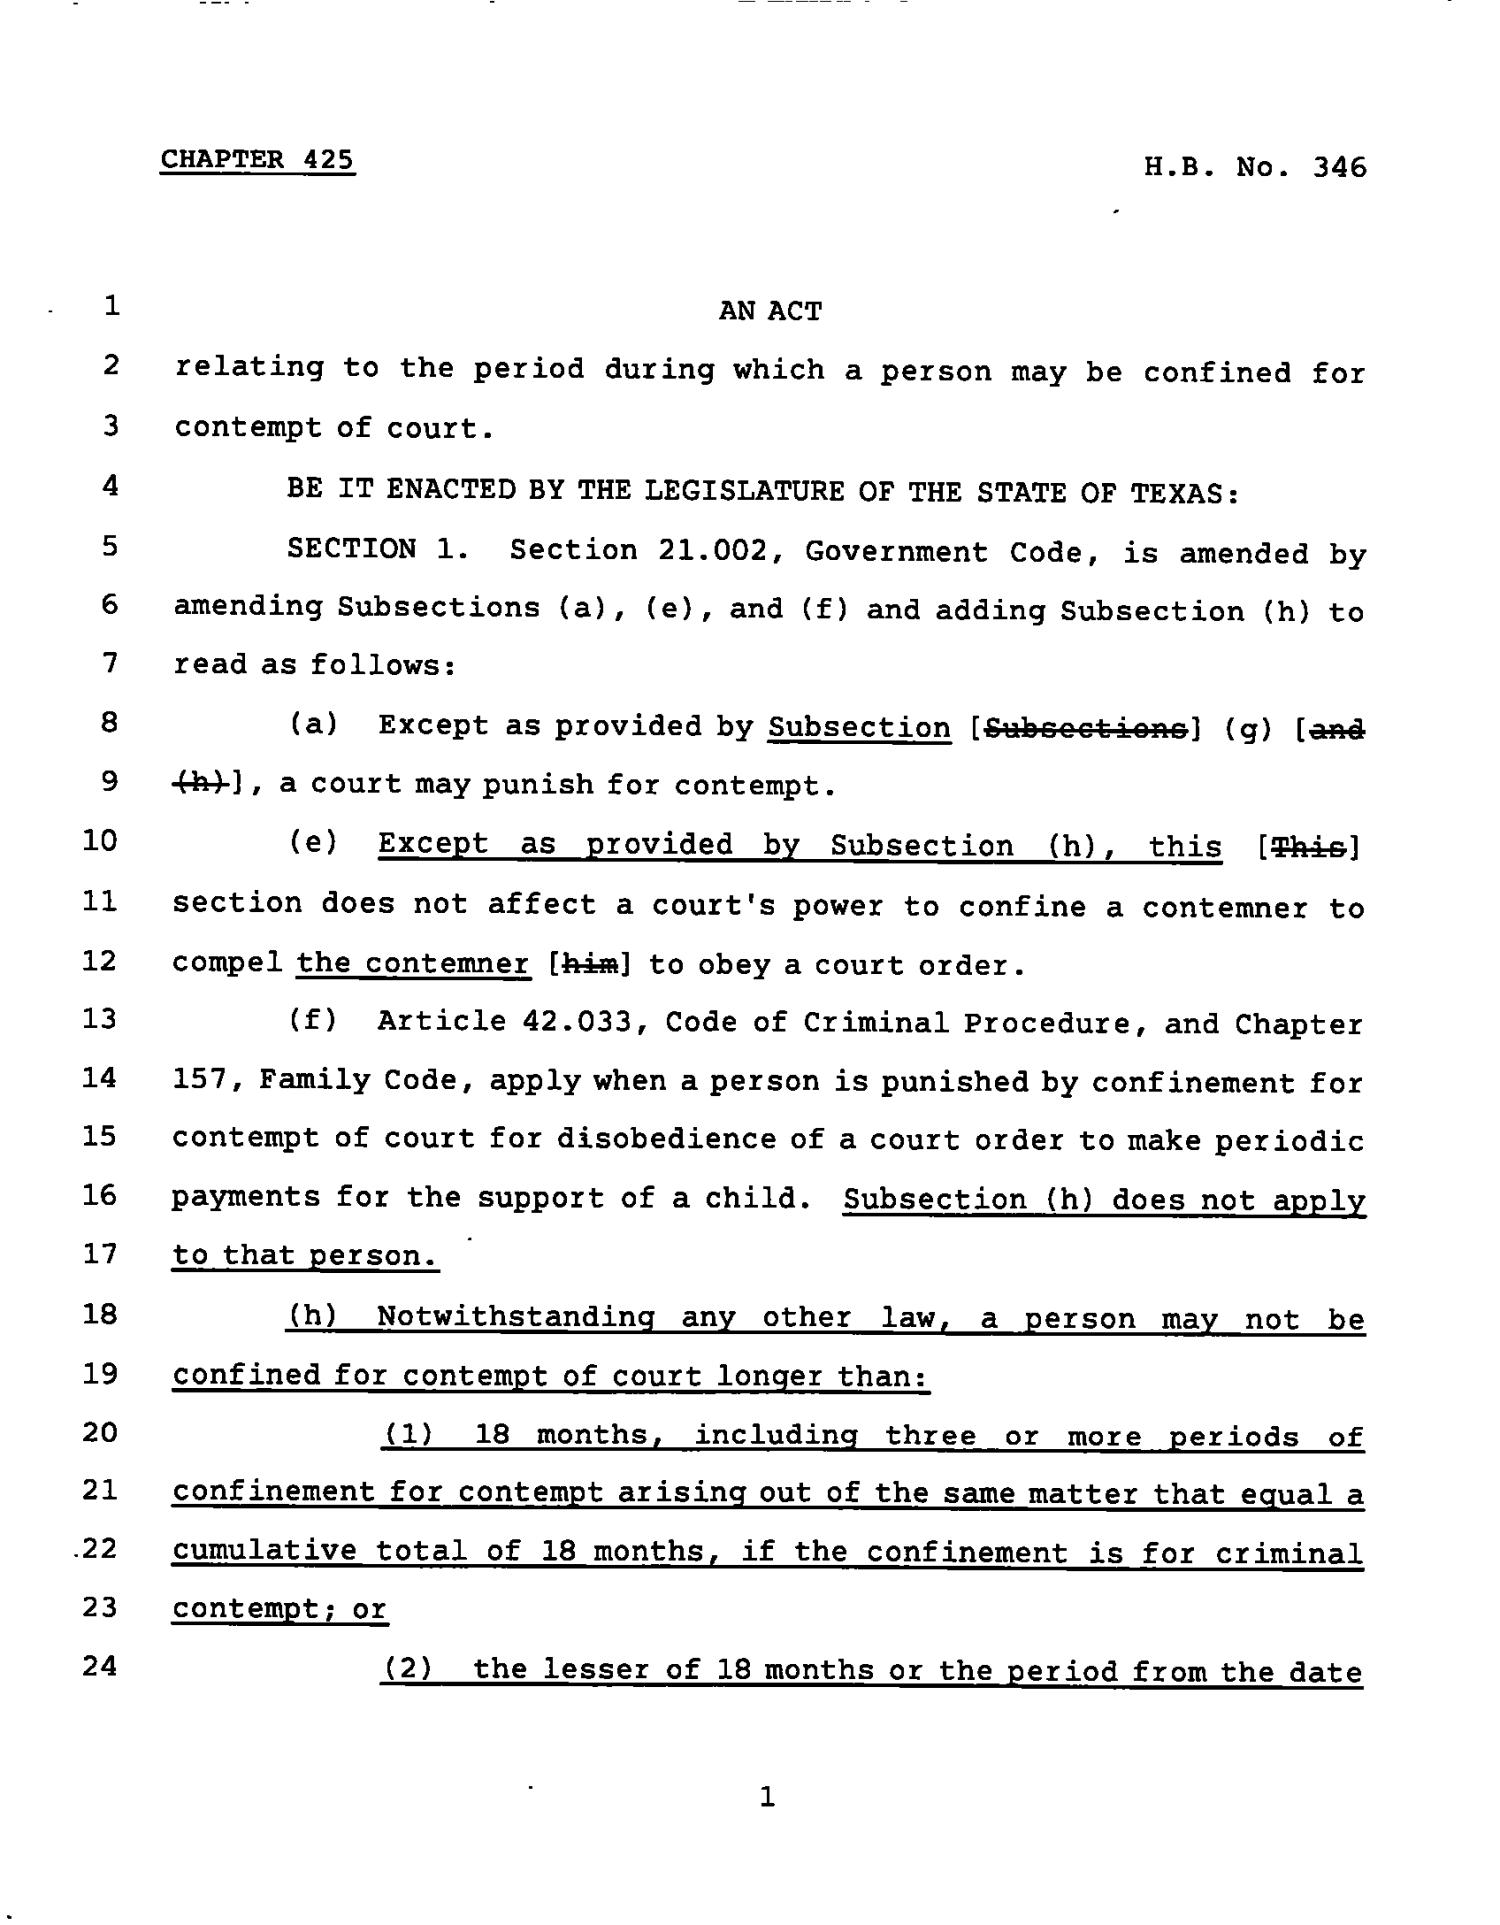 78th Texas Legislature, Regular Session, House Bill 346, Chapter 425                                                                                                      [Sequence #]: 1 of 3